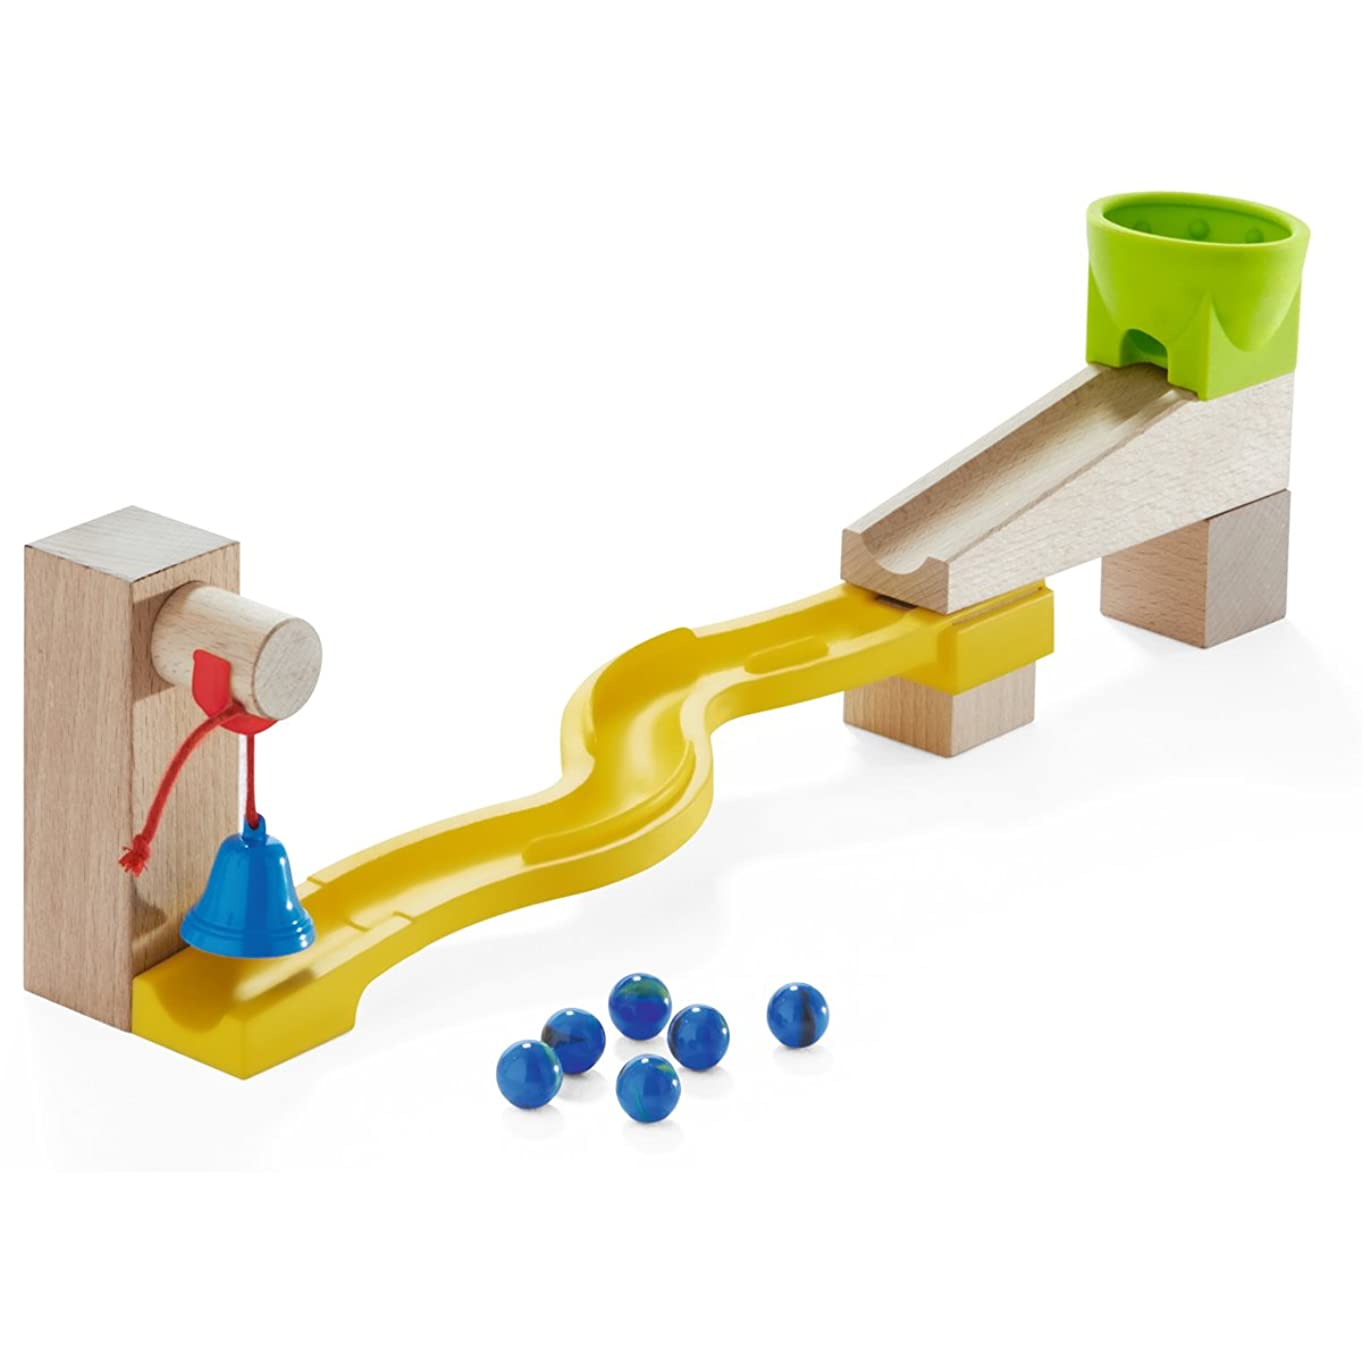 HABA Ball Track Snake Run Add-On Set - Marble Ball Track Accessory (Made in Germany)